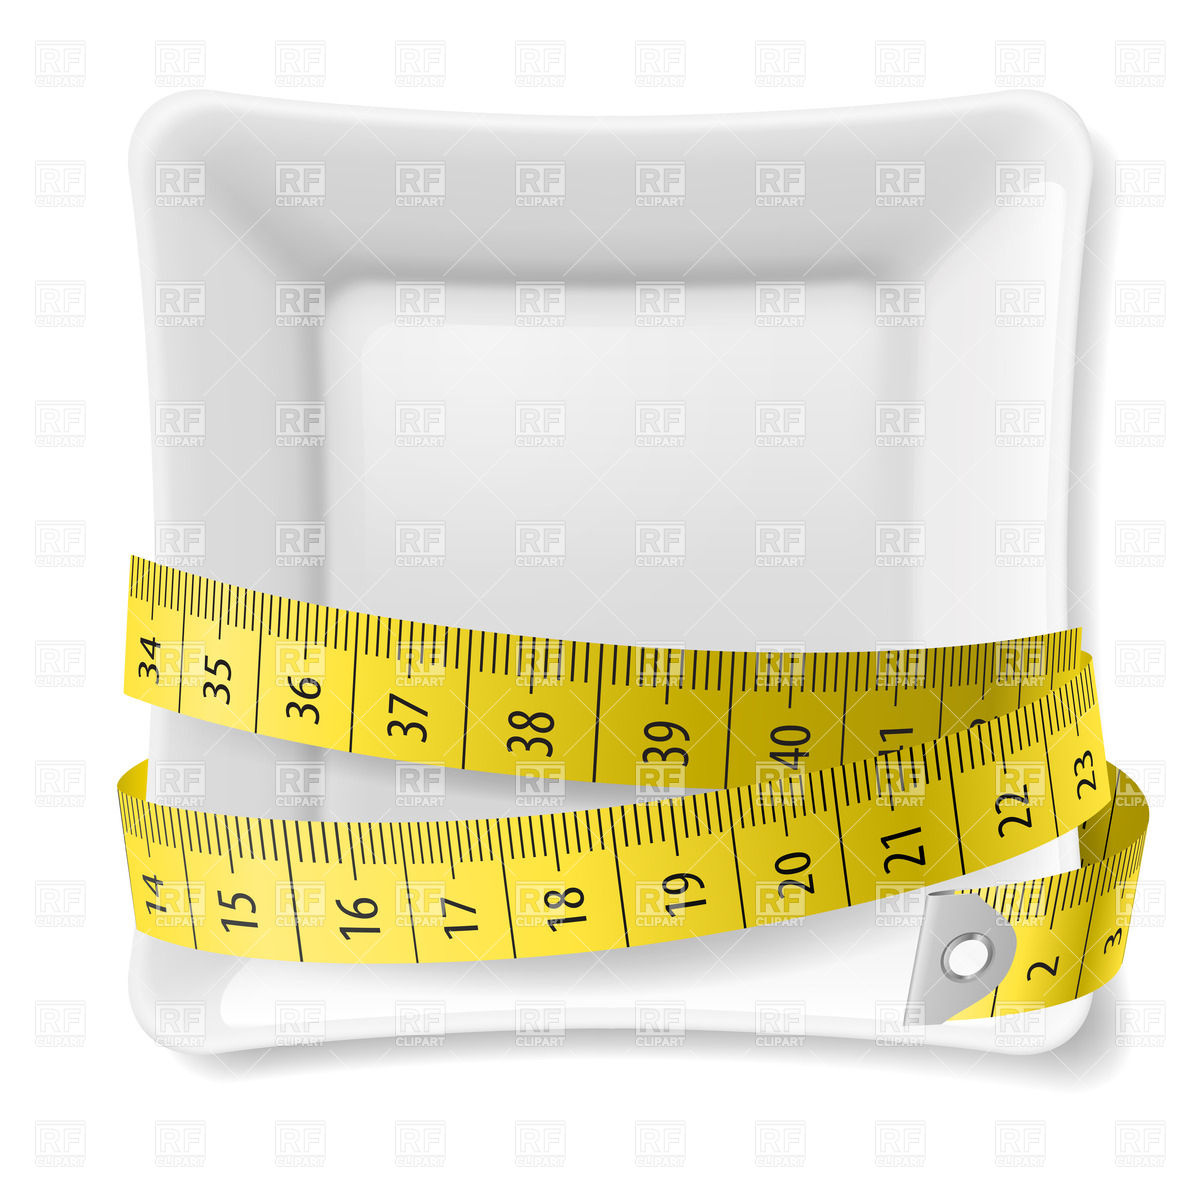 1200x1200 Square Plate With Tape Measure Vector Image Vector Artwork Of